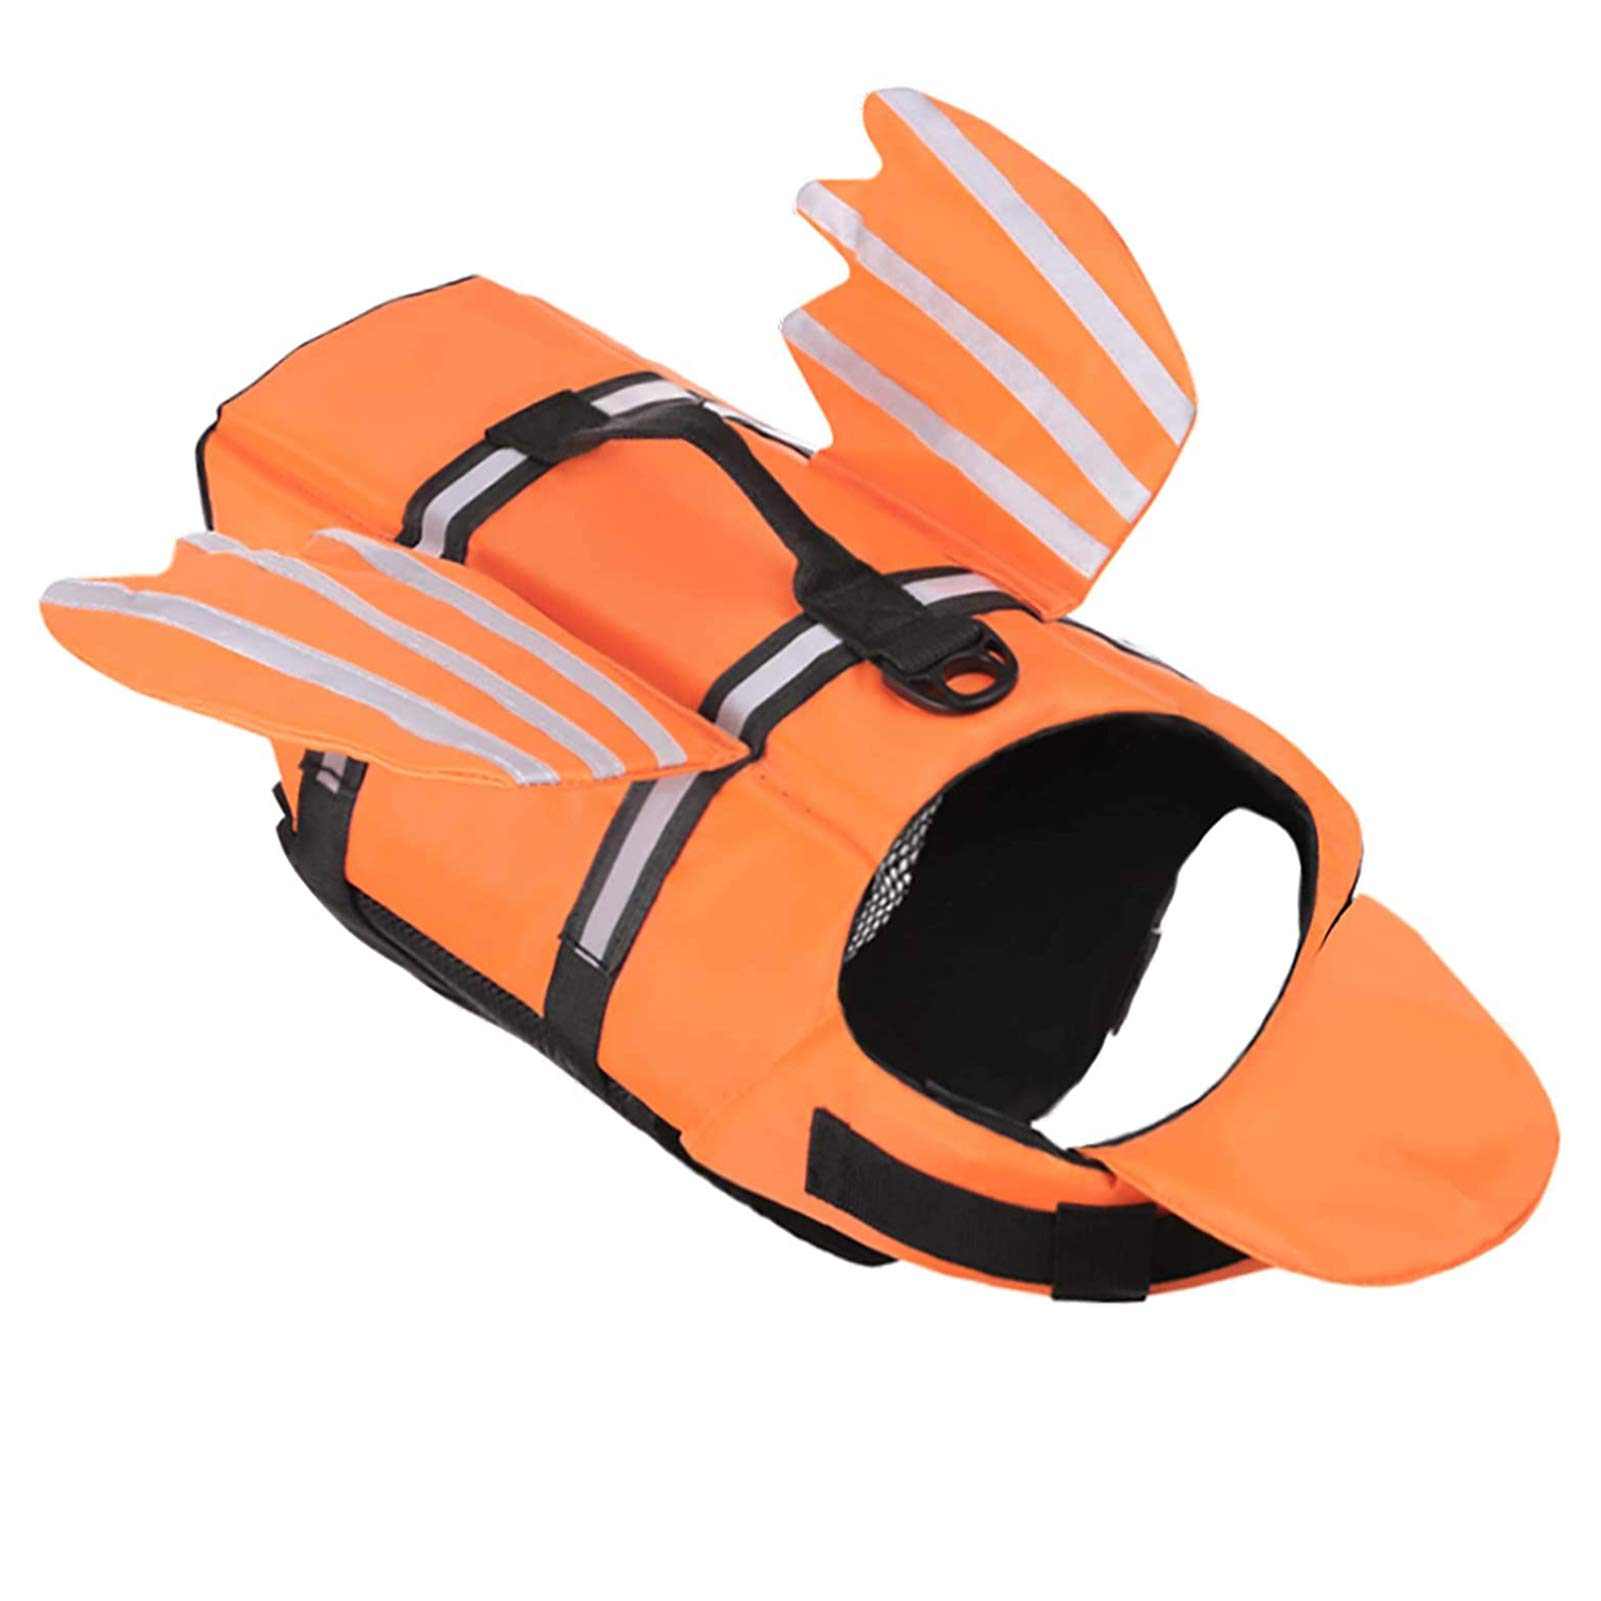 AOFITEE Dog Life Jacket Pet Life Vest, Reflective Safety Doggy Lifesaver Preserver with Lovely Wings and Rescue Handle, Ripstop Swimming Vest for Small Medium and Large Dogs (Orange S)